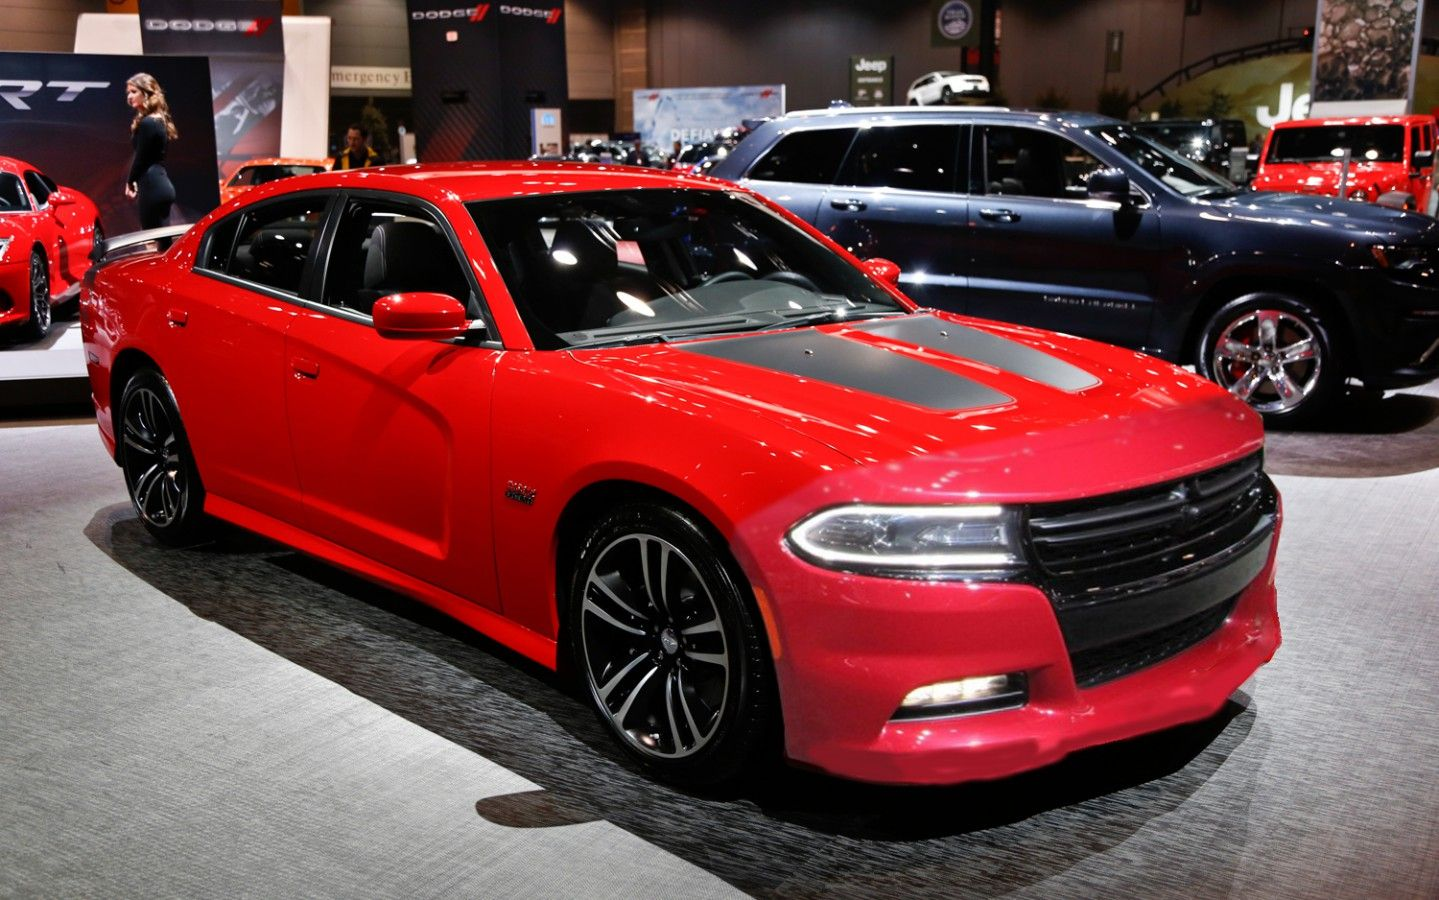 Dodge Charger Hellcat 2017 Srt8 To Be The Most Ful V8 Sedan